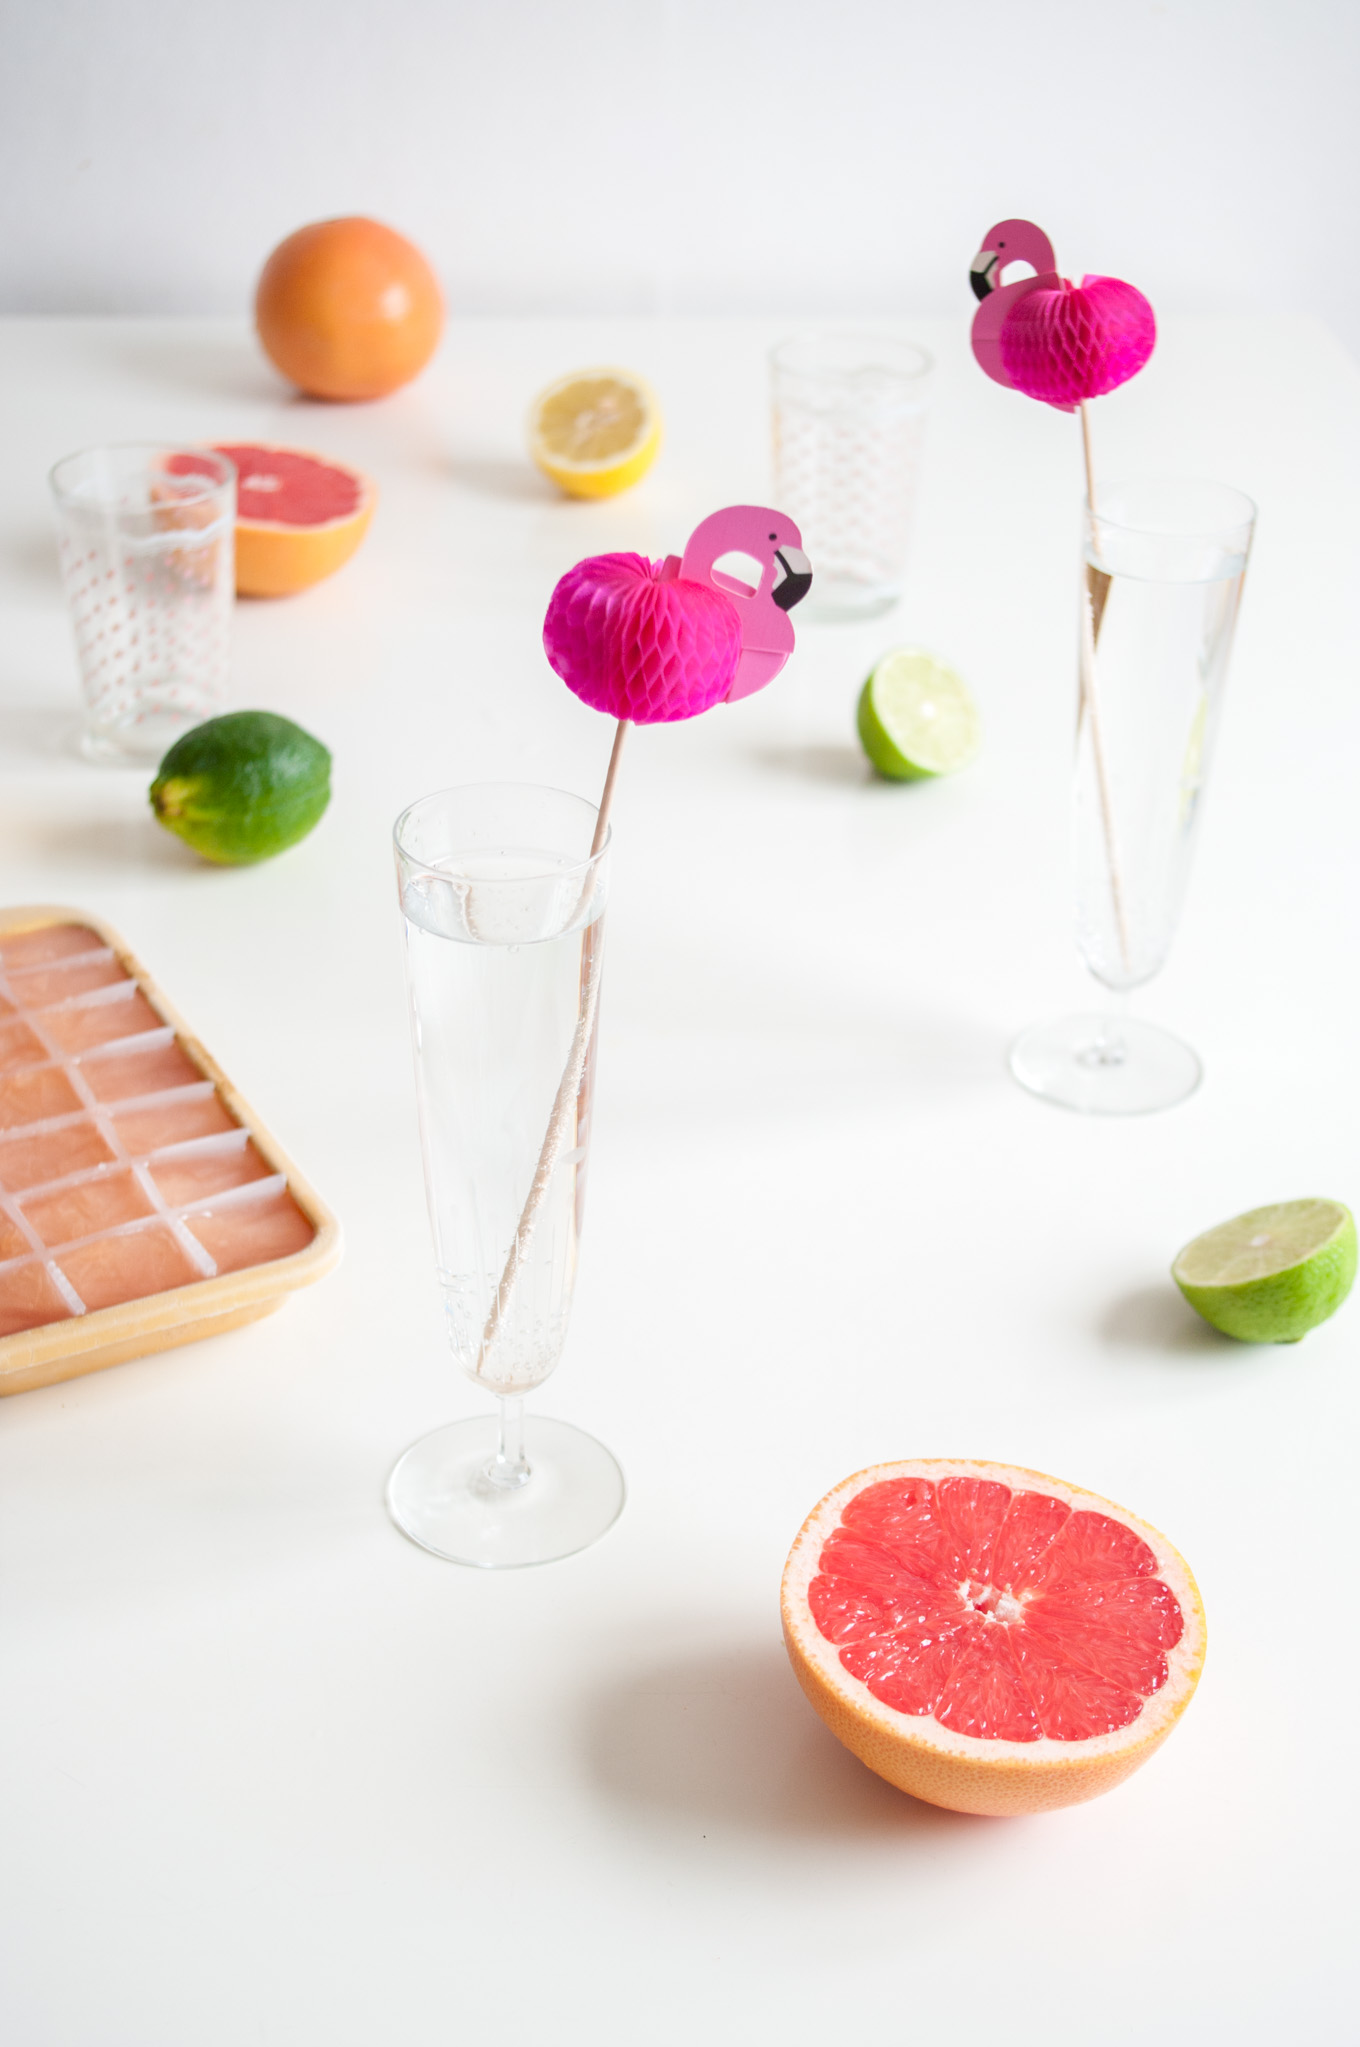 Citrus Fizz with Lemon, Lime and Grapefruit – A super healthy, non-alcoholic drink recipe with a blend of fresh citrus juices and sparkling water. Low-sugar and packed with vitamins C and other vitamins and minerals. Great for a pick-me-up any time of the day. By @deliciouscratch | deliciousfromscratch.com